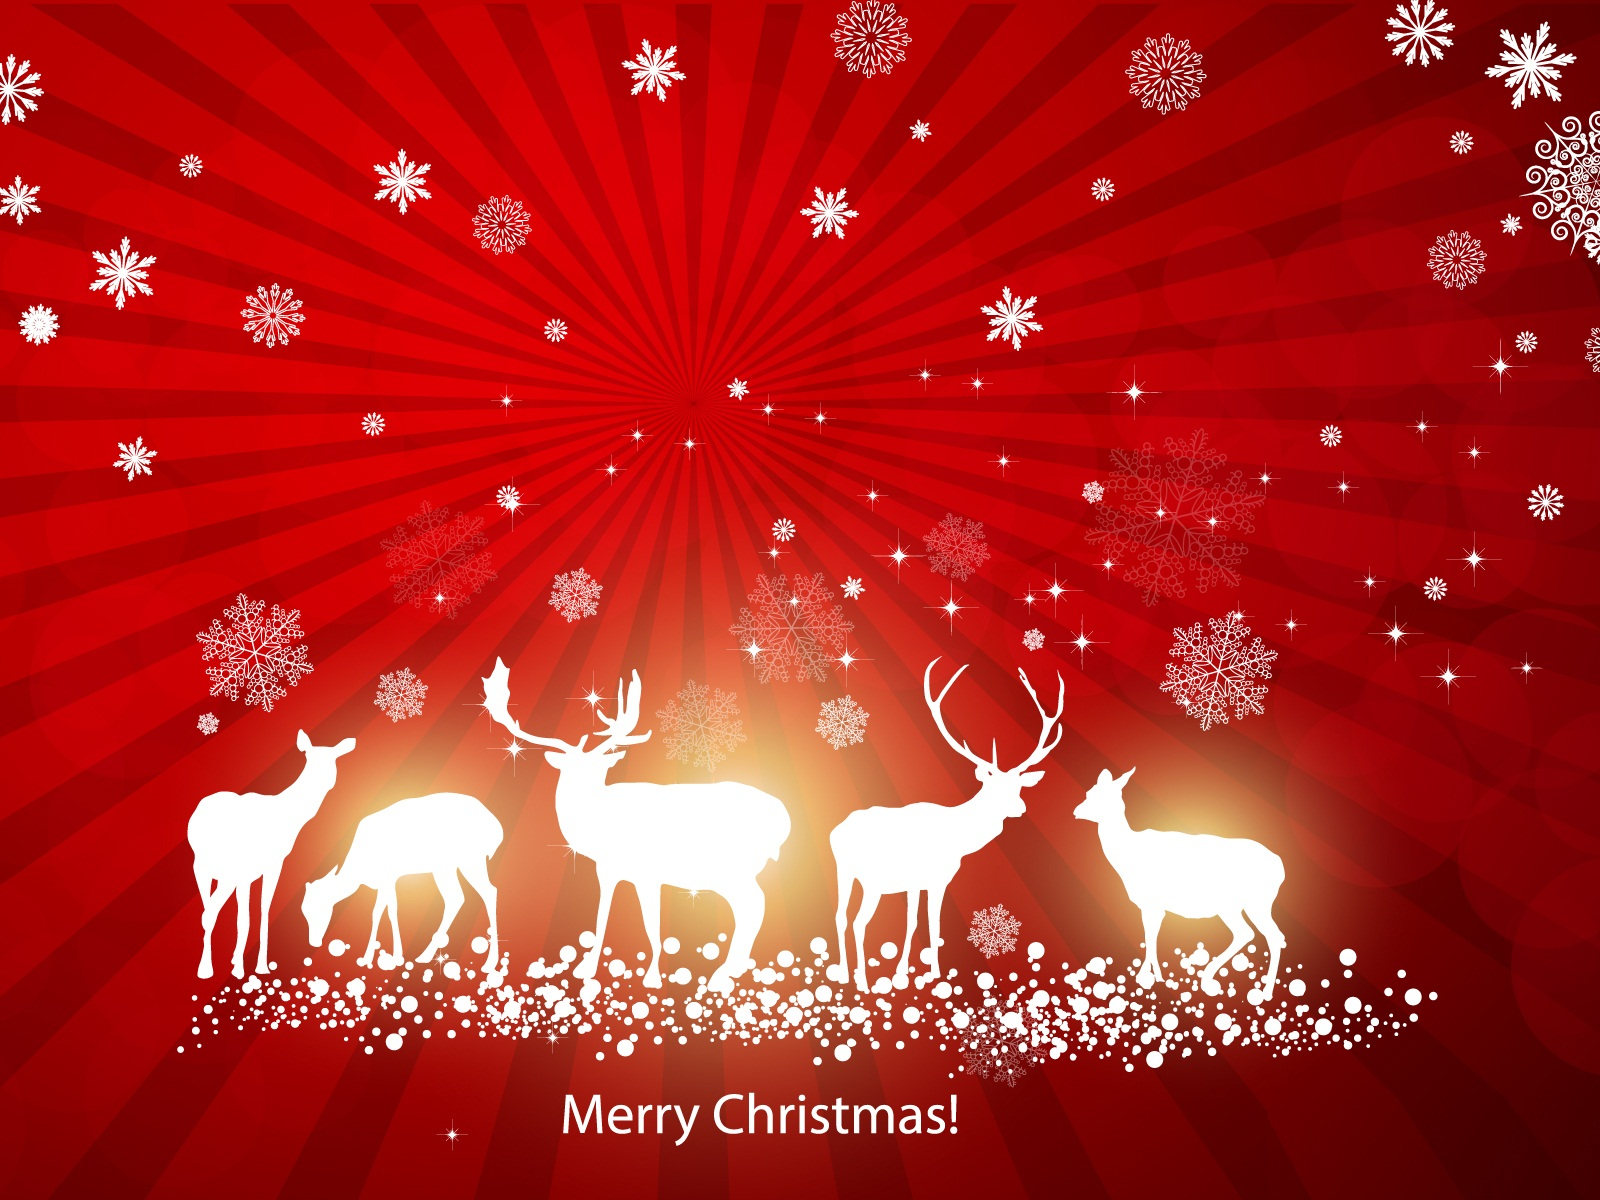 free christmas wallpaper and screensavers 2015 - Grasscloth Wallpaper